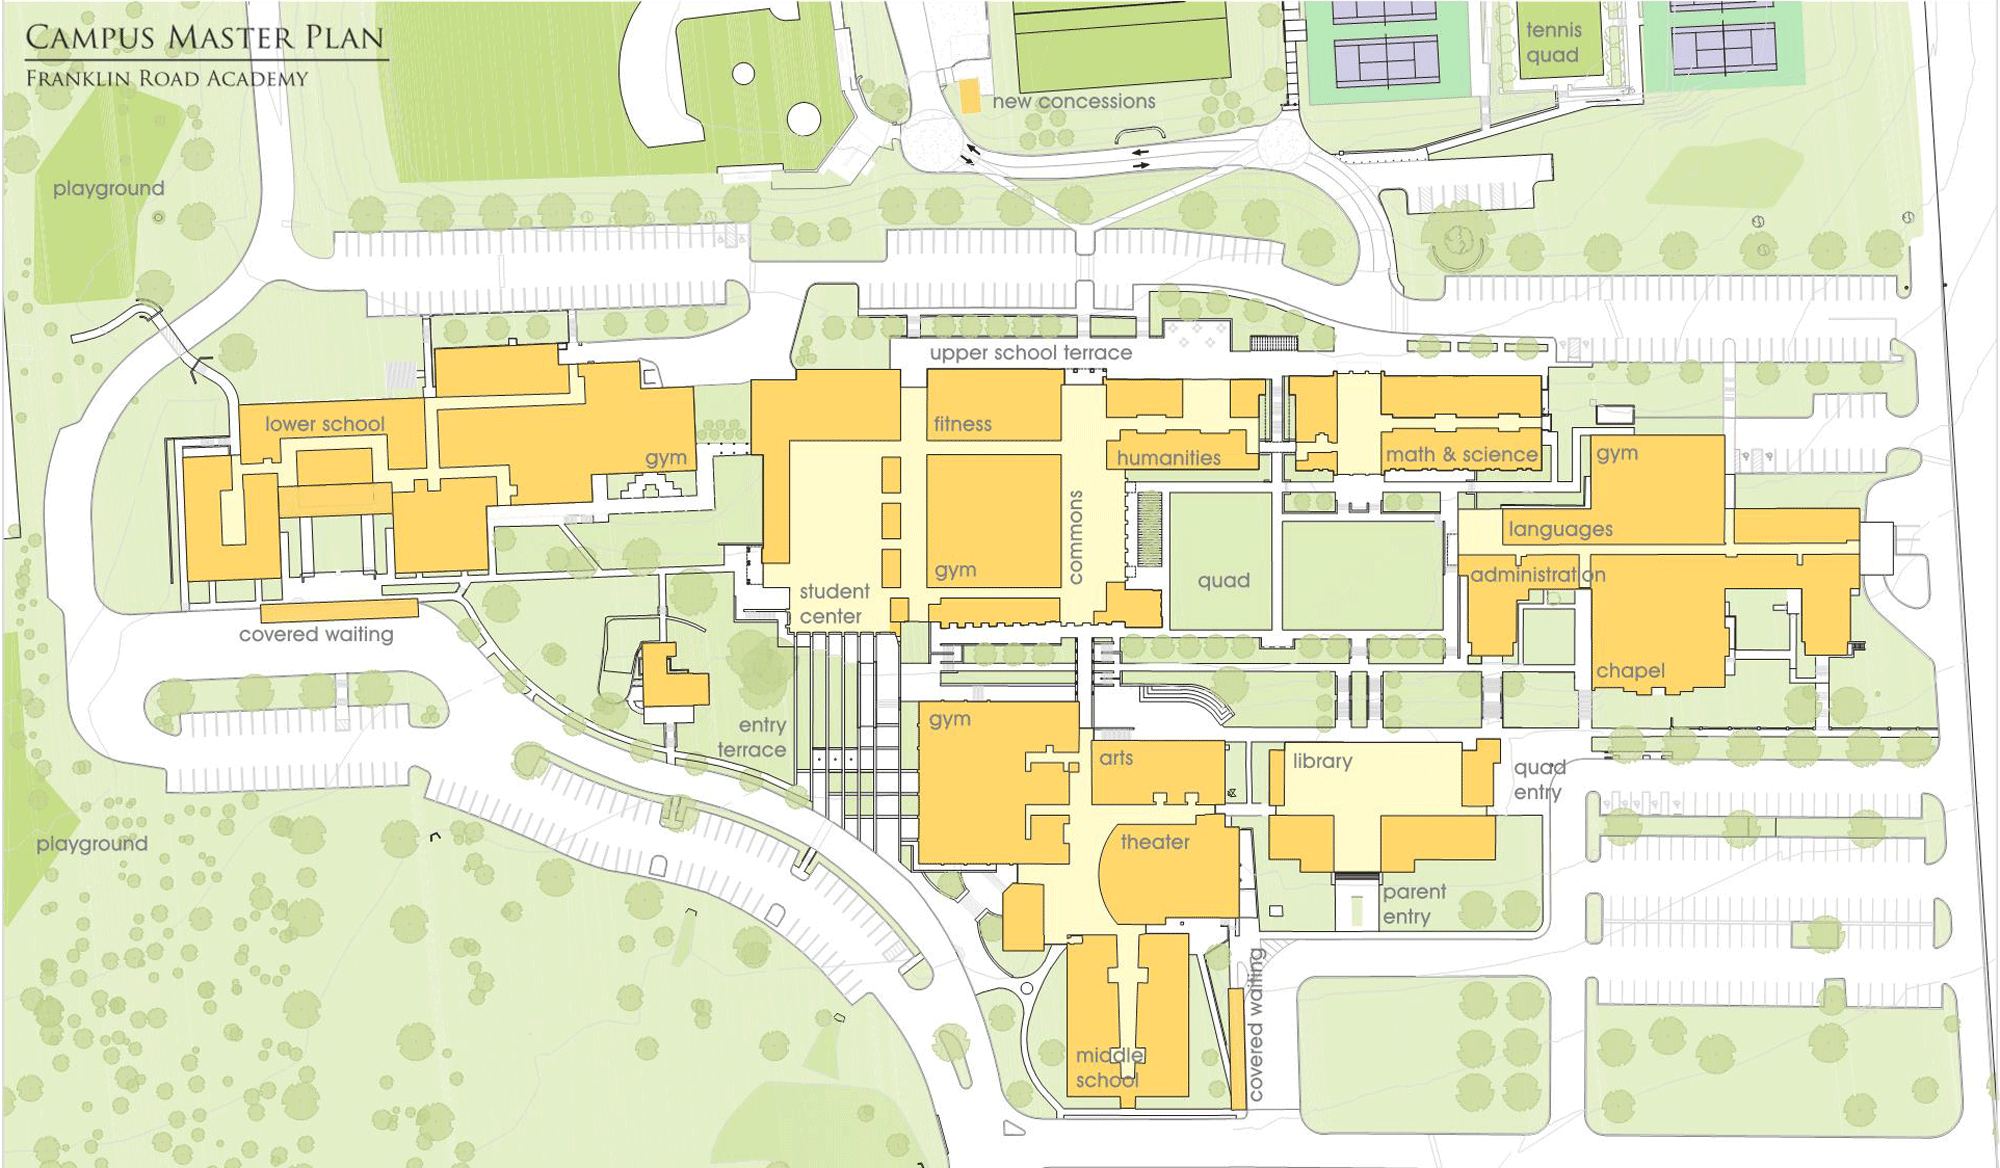 Existing and proposed campus buildings and circulation patterns